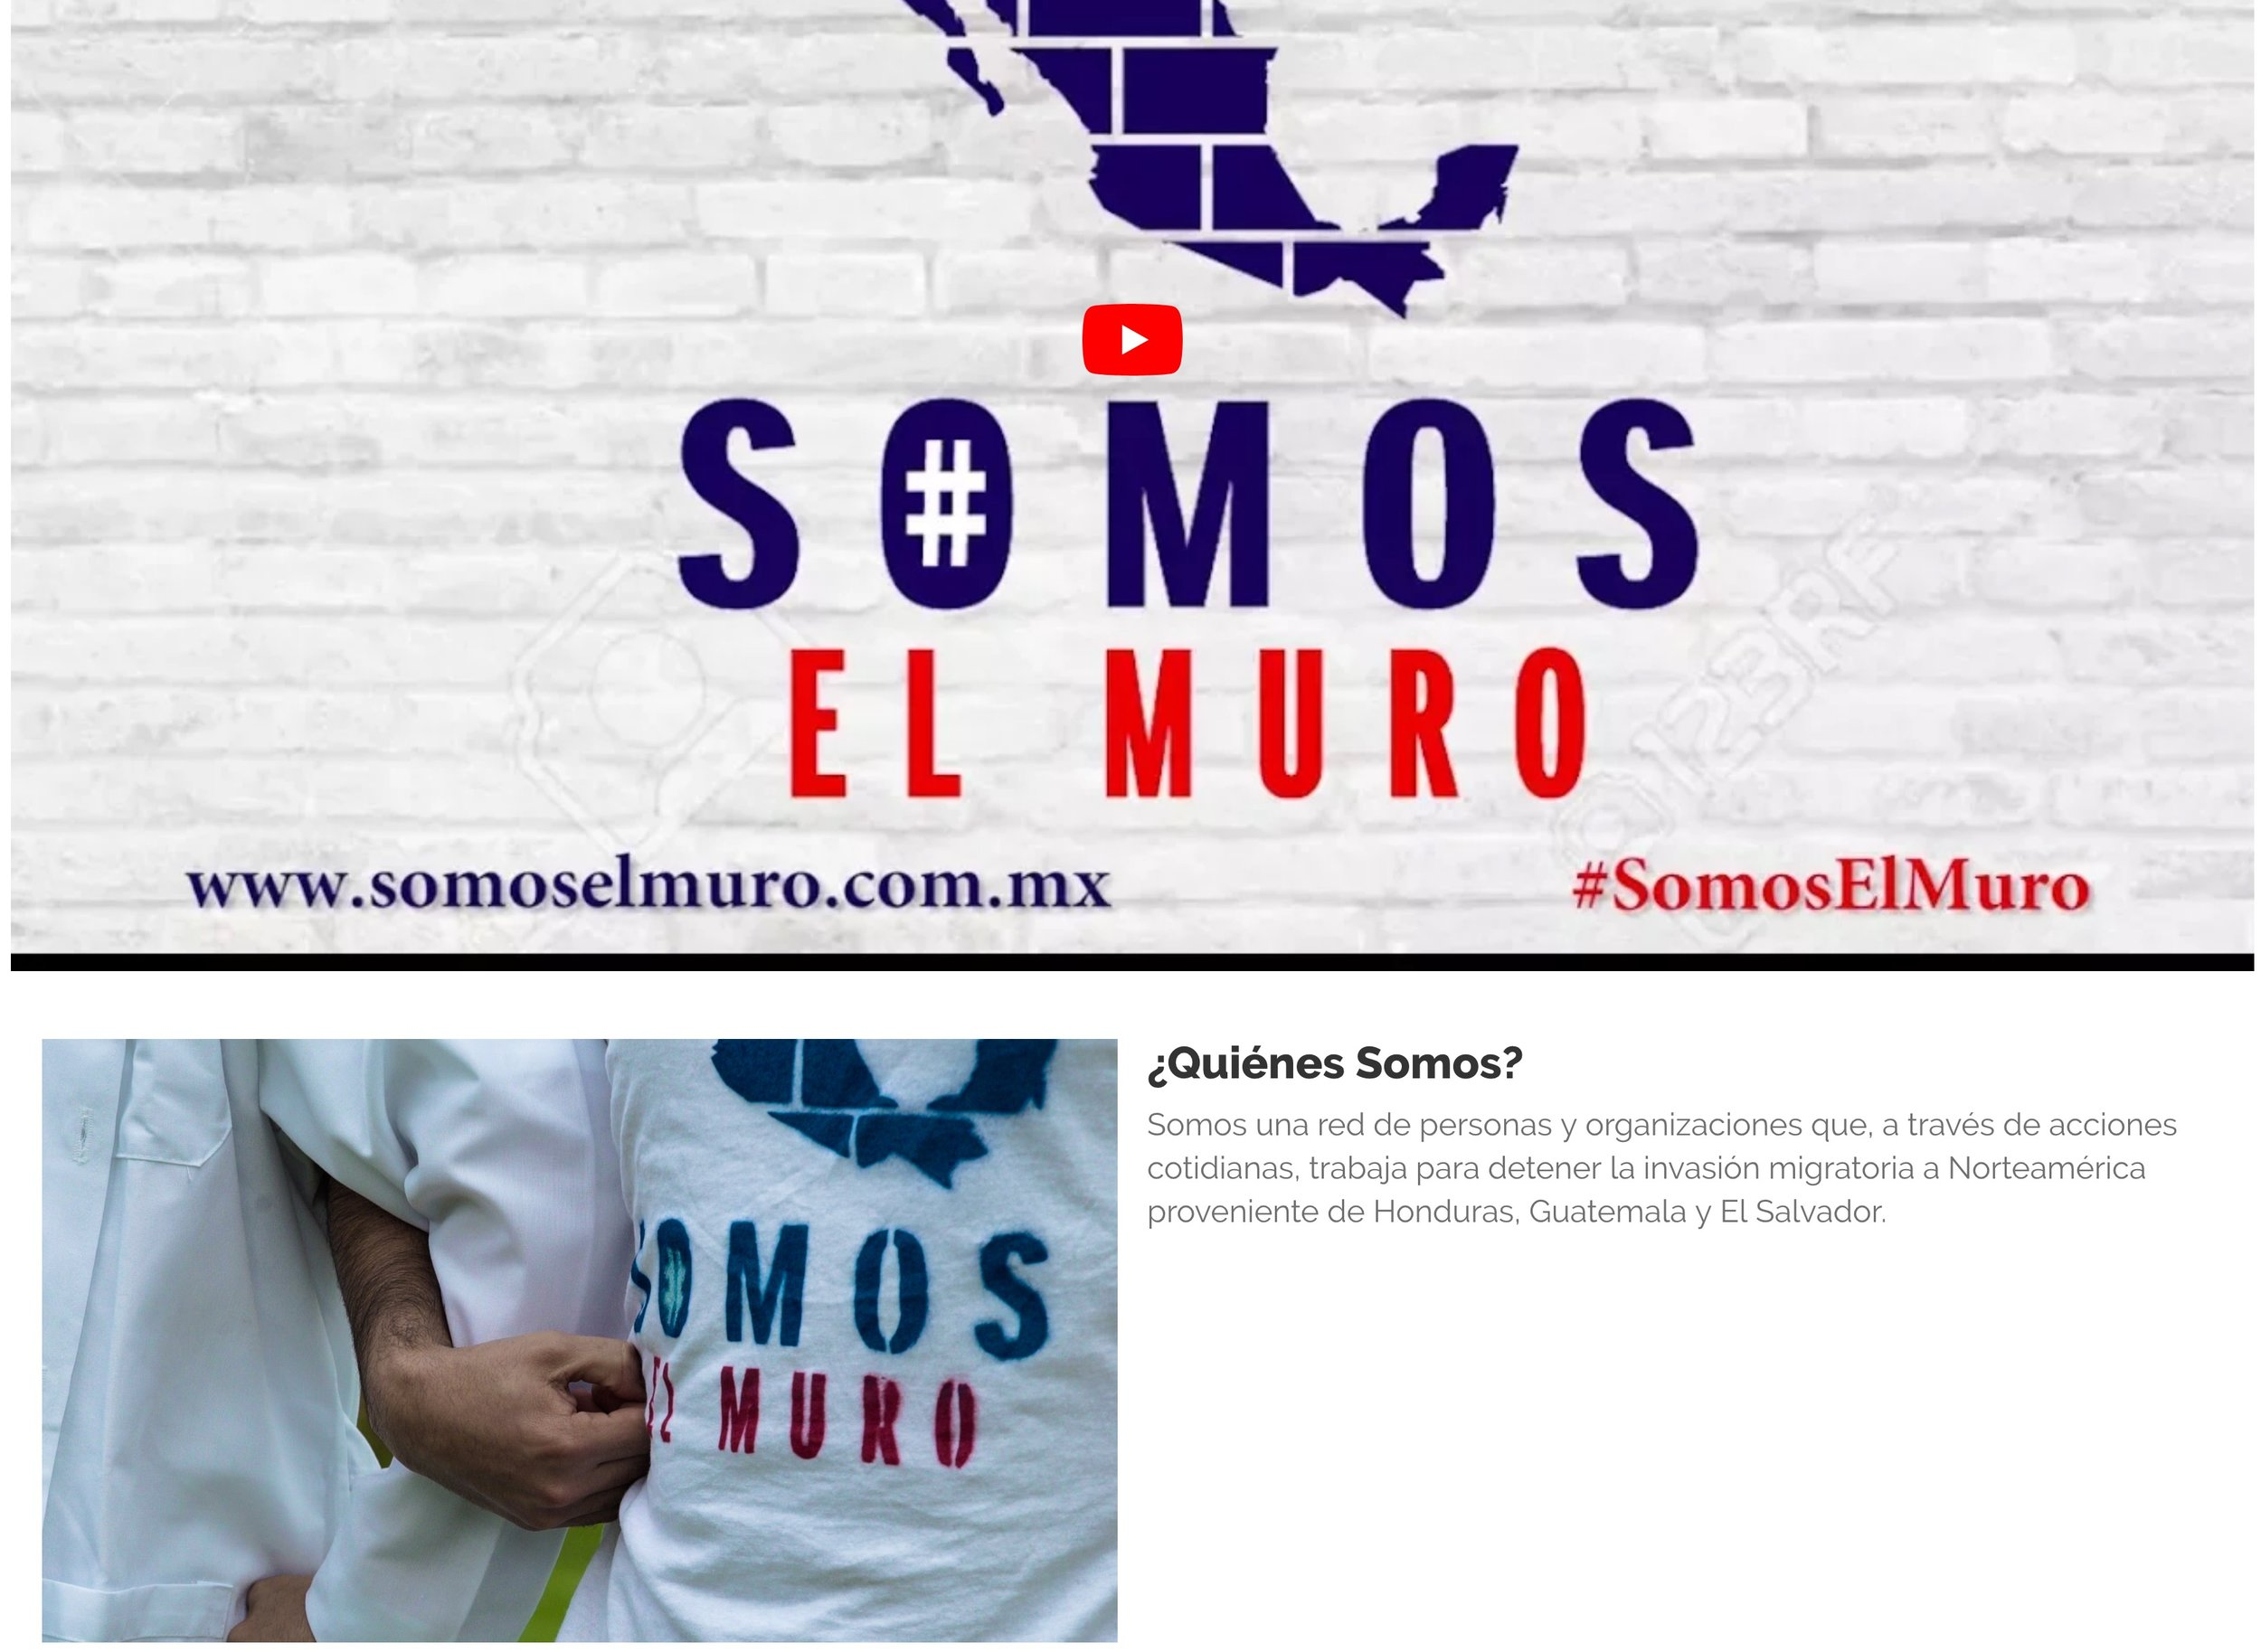 #SomosElMuro website